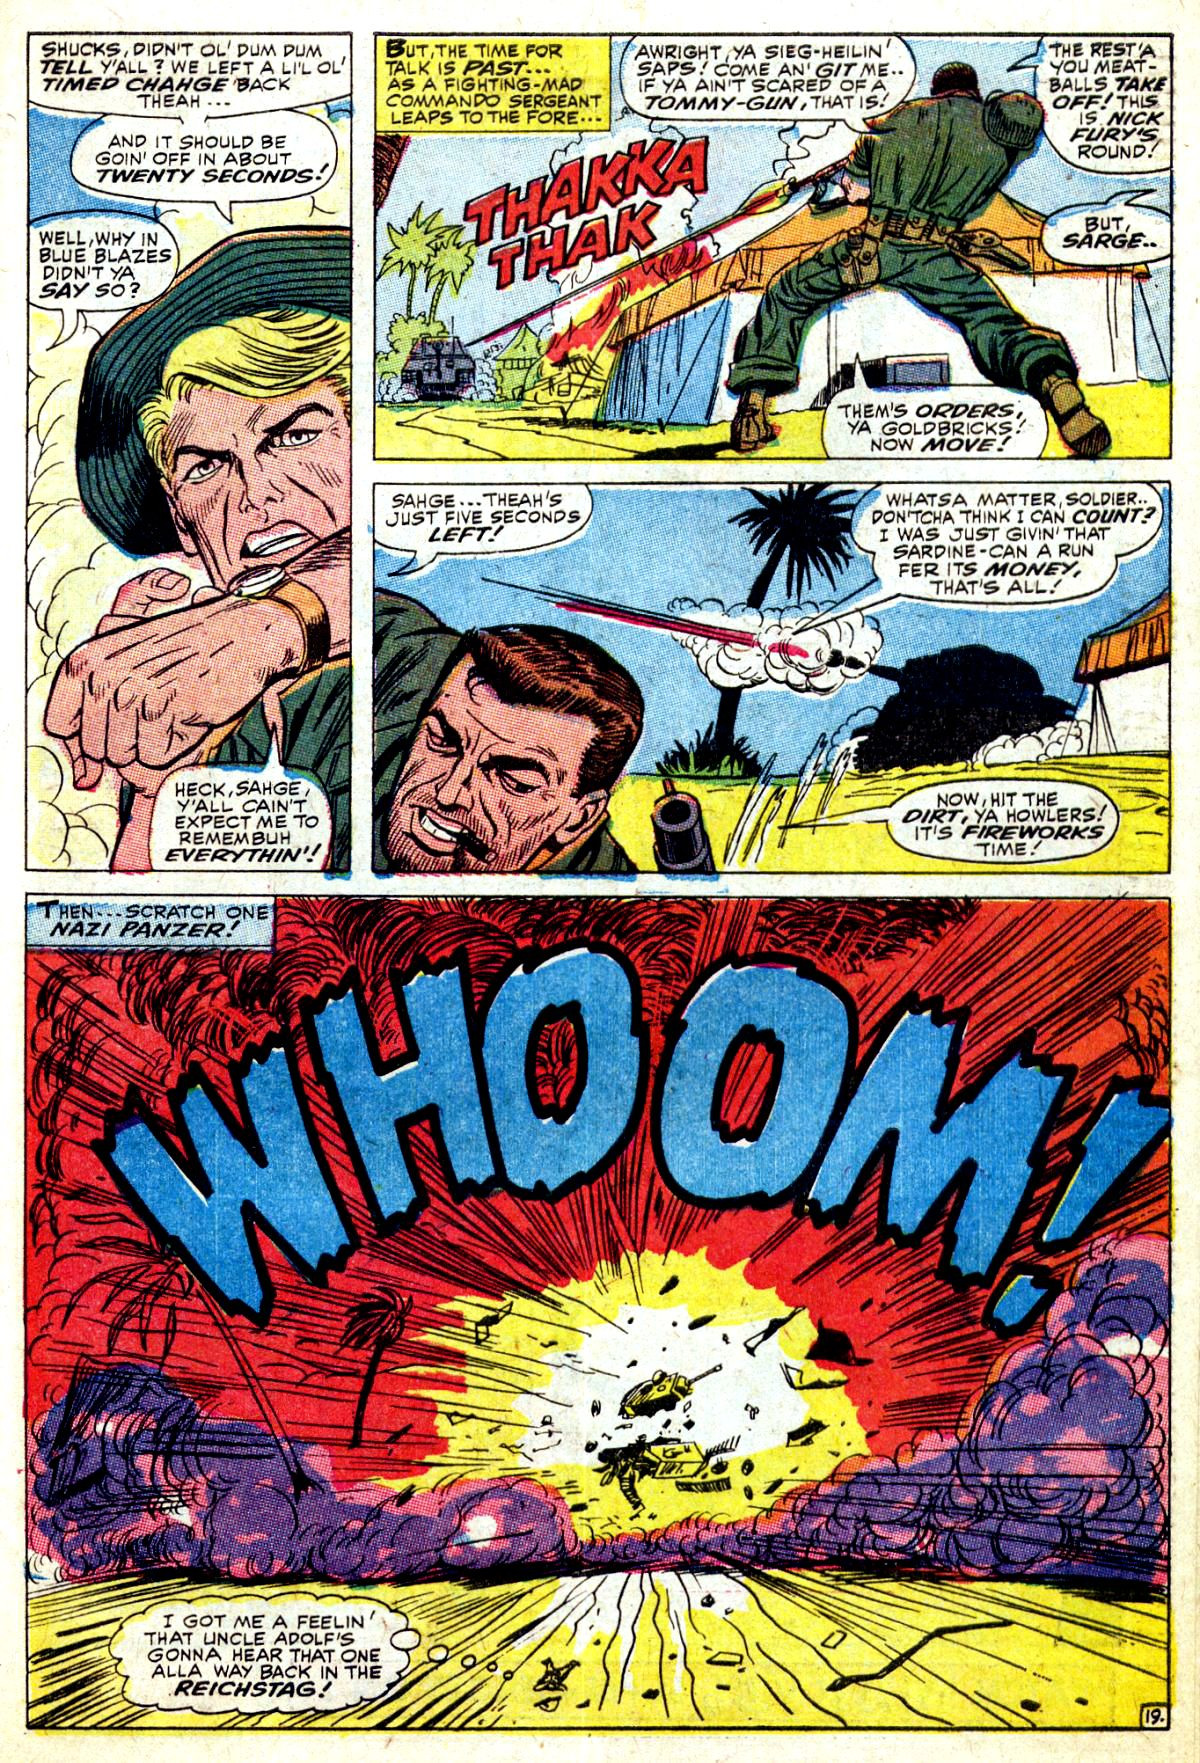 Read online Sgt. Fury comic -  Issue #37 - 27